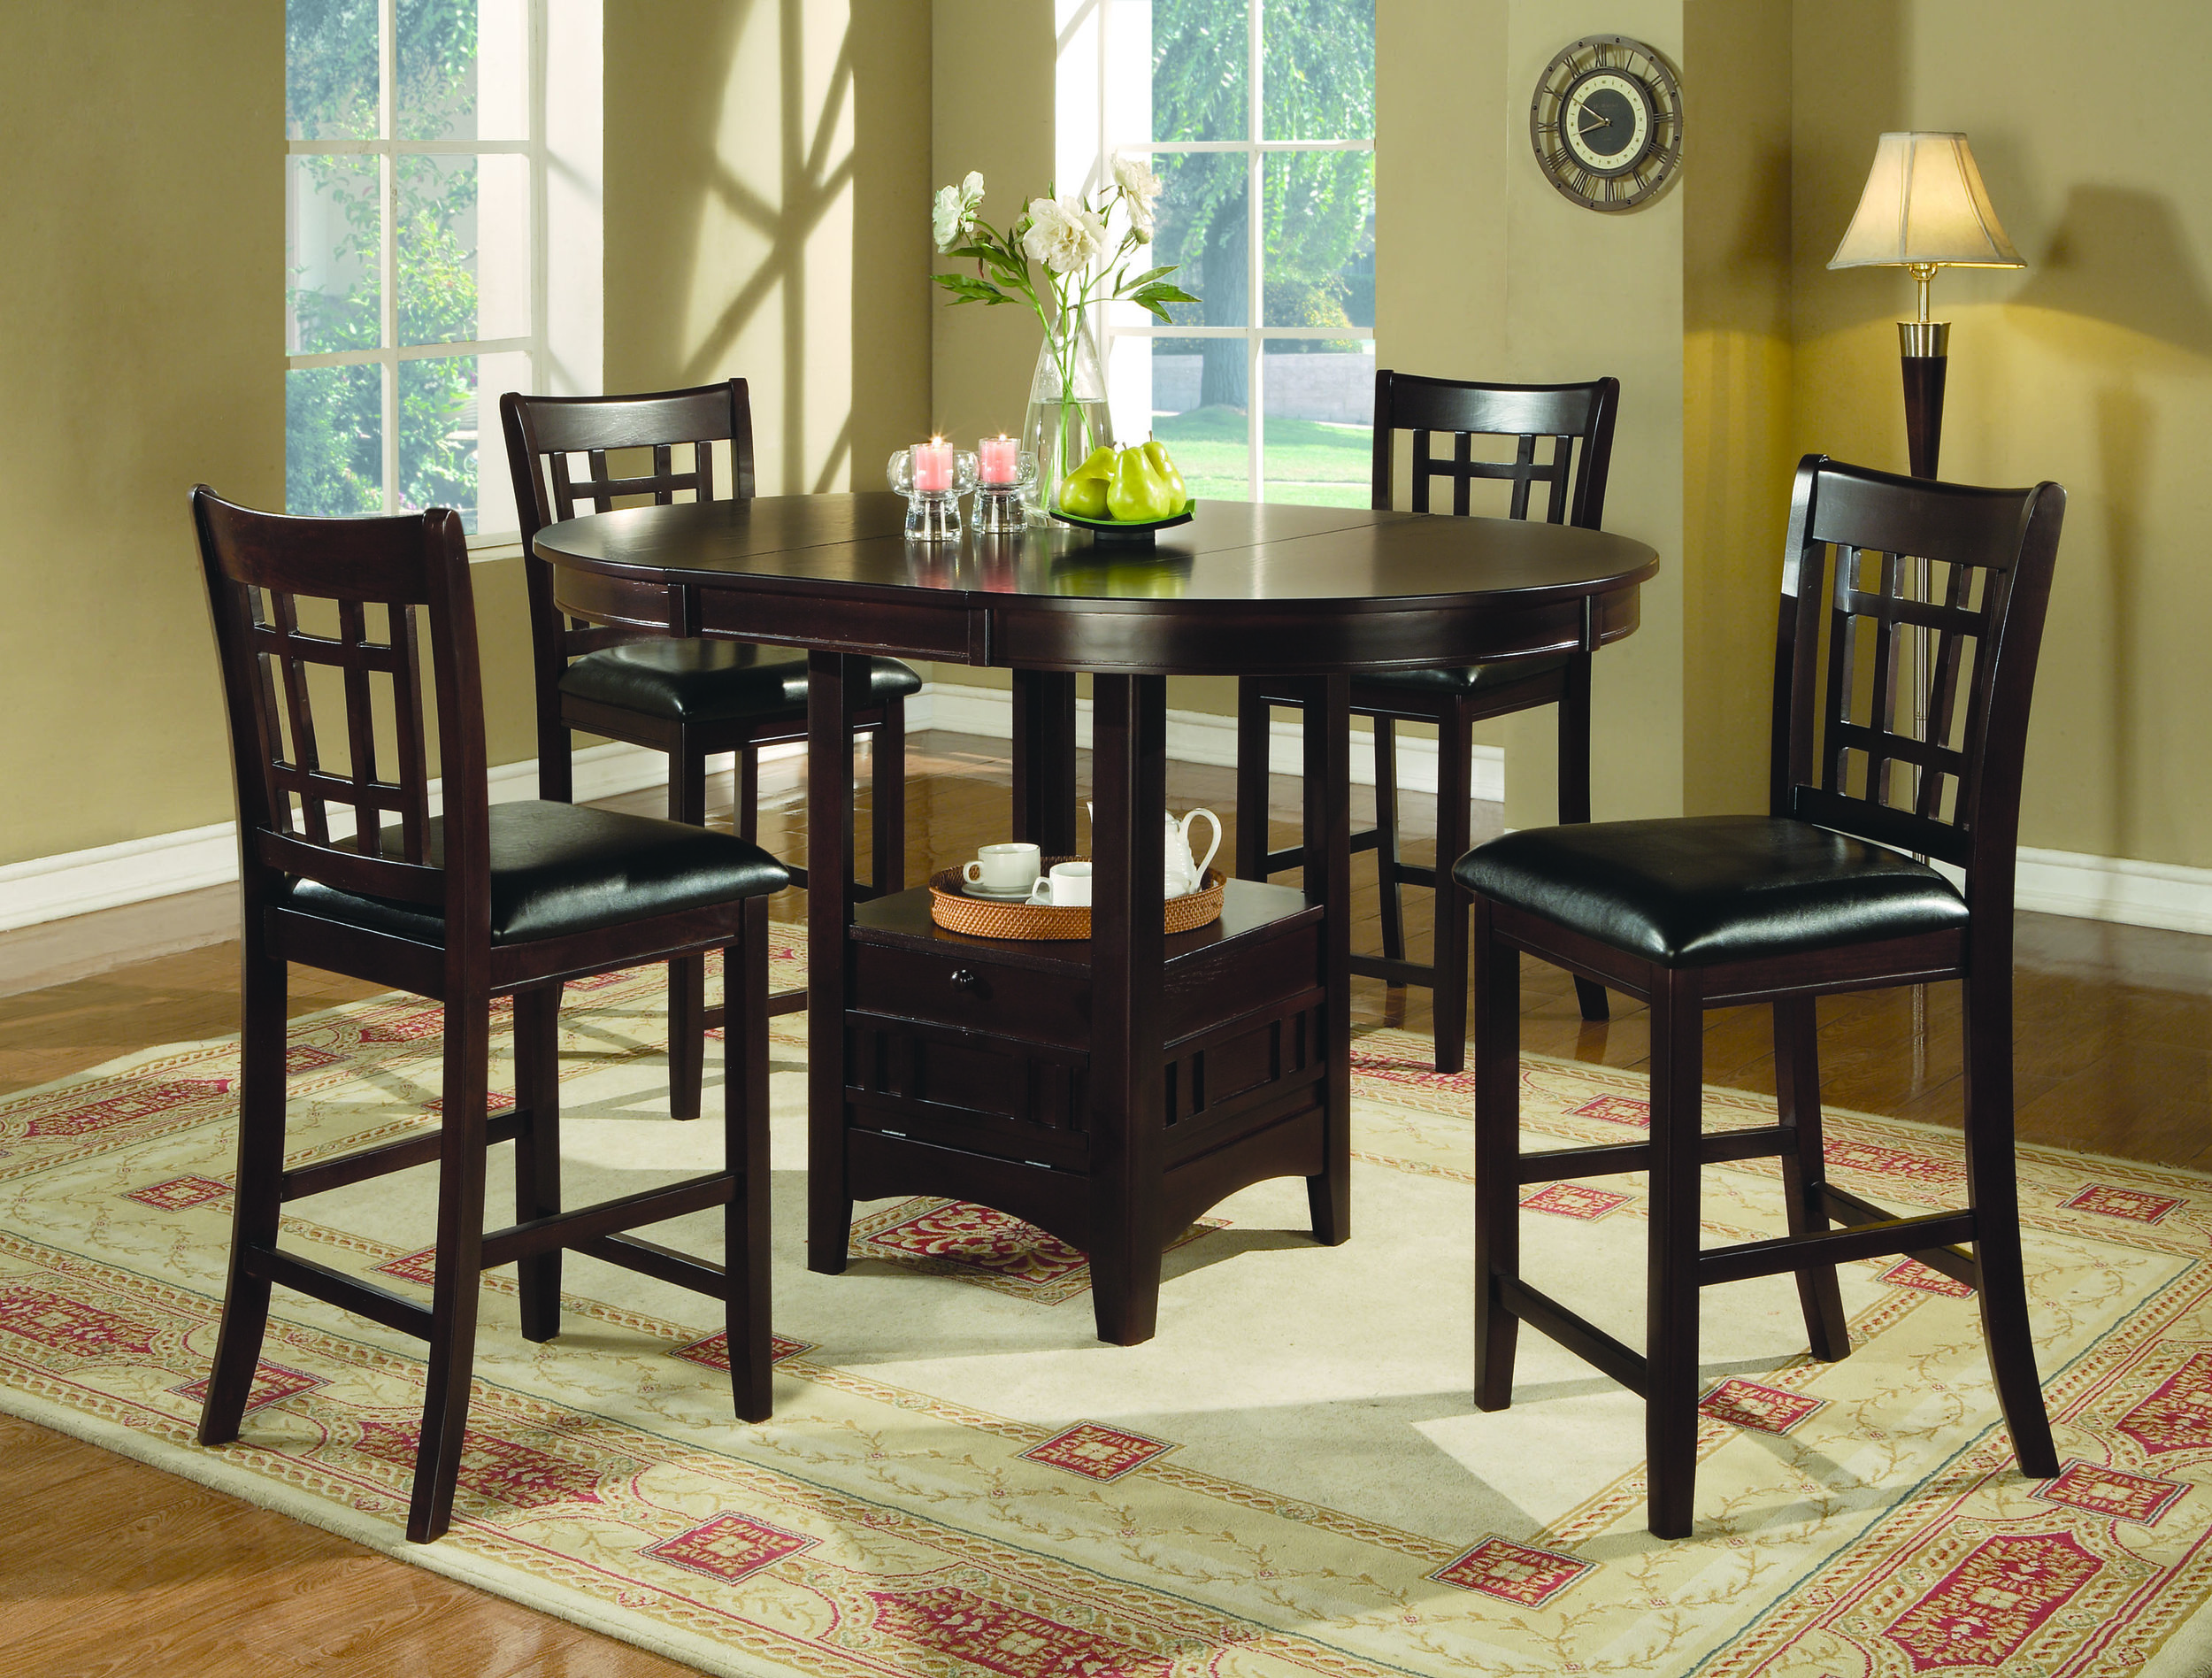 Empire Counter Height Dining Set Espresso Table Walnut